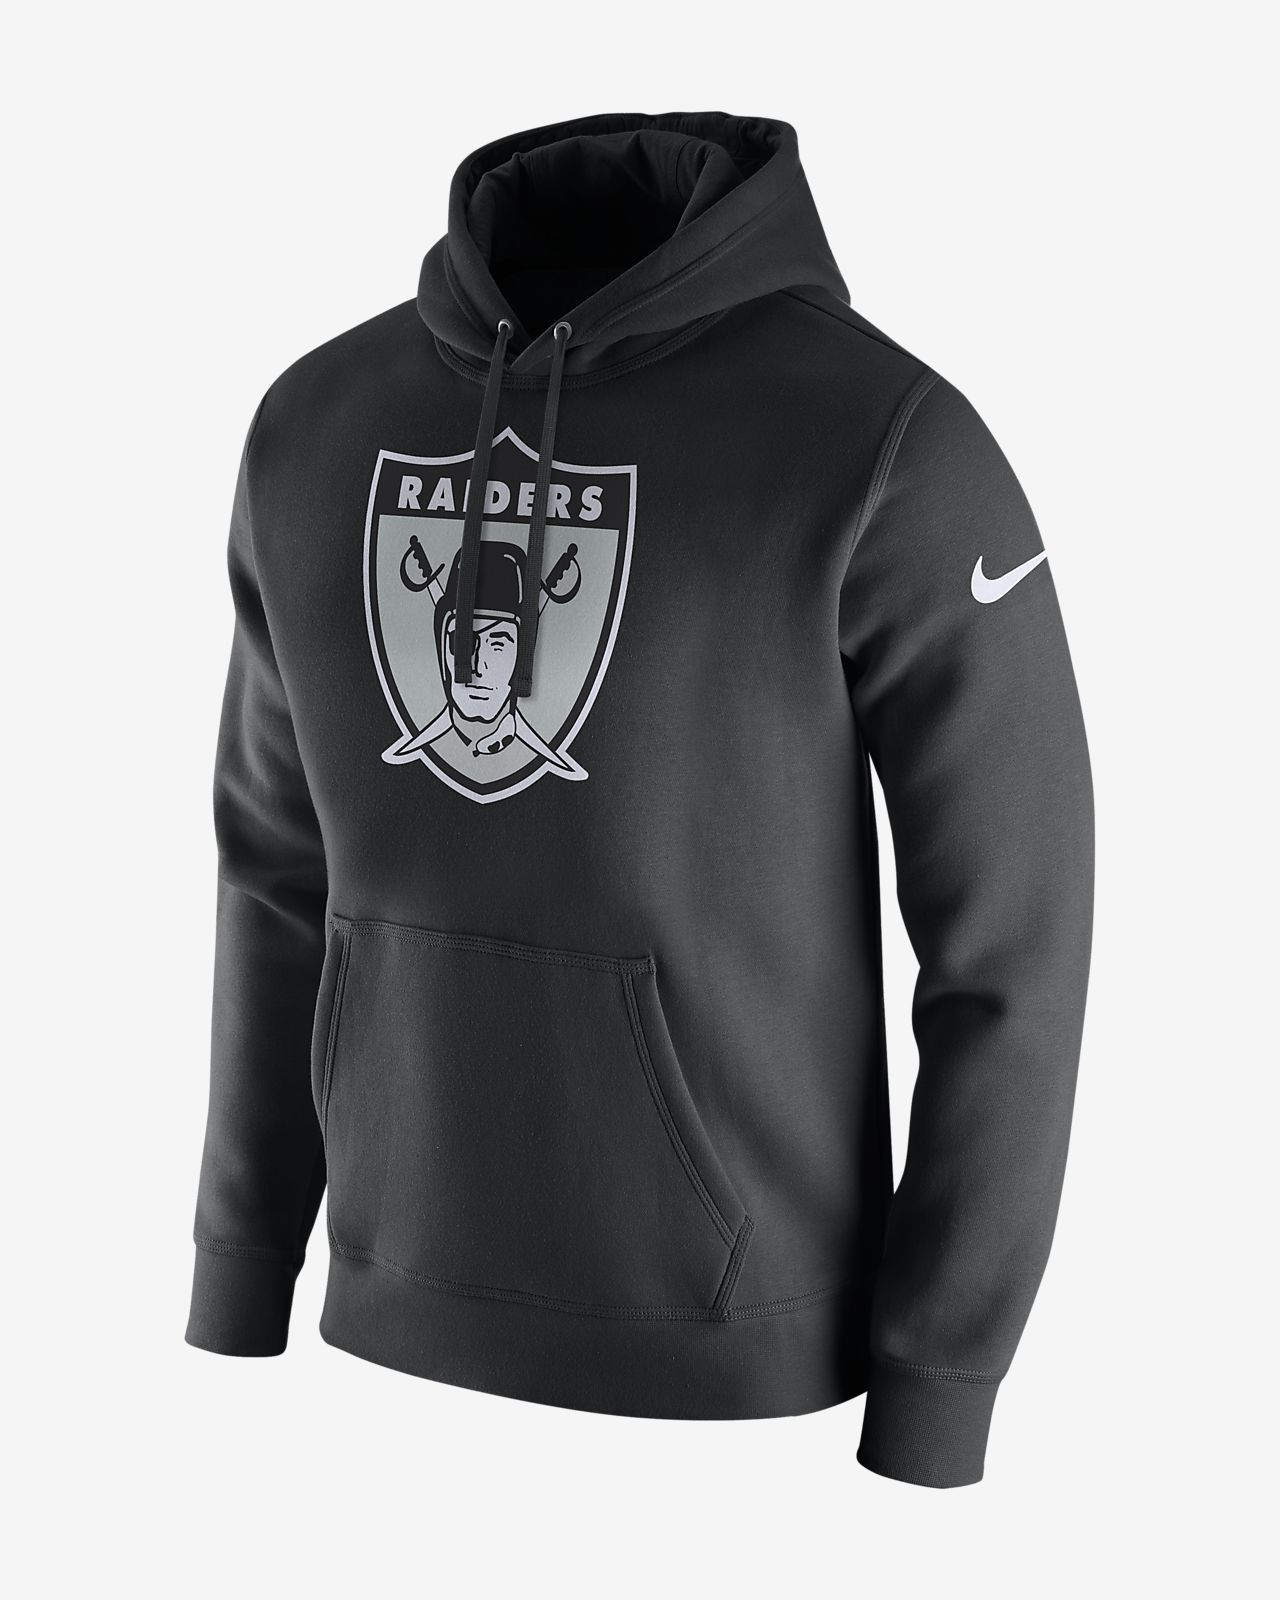 965578e564a4 Nike Club (NFL Raiders) Men s Fleece Pullover Hoodie. Nike.com